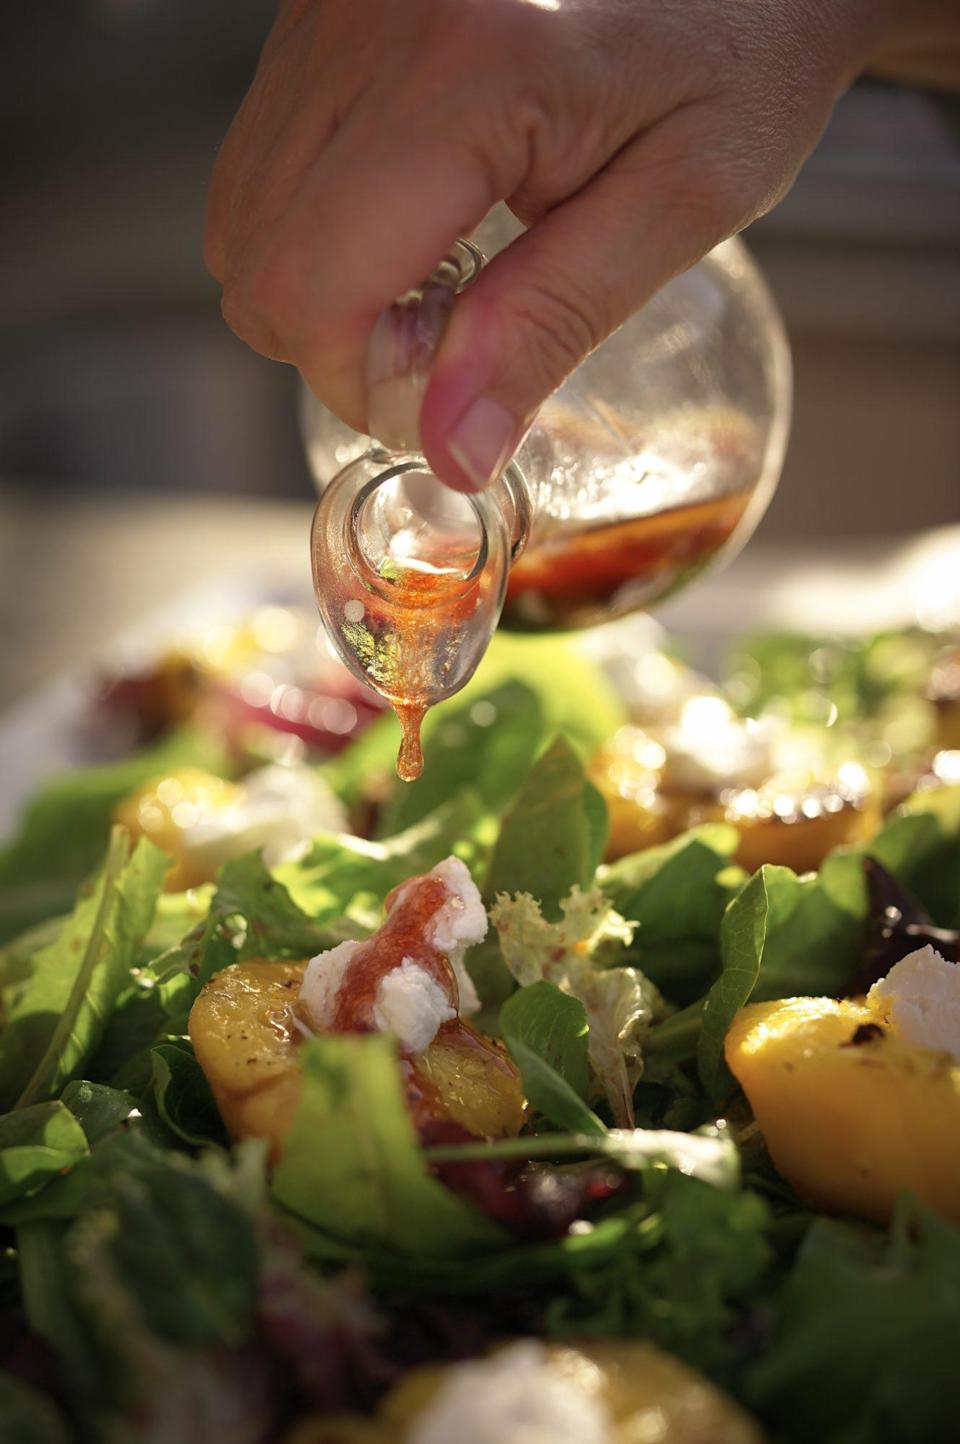 """<p><strong>Recipe:</strong> <a href=""""https://www.southernliving.com/recipes/regina-charboneau-grilled-peach-salad"""" rel=""""nofollow noopener"""" target=""""_blank"""" data-ylk=""""slk:Grilled Peach Salad with Chipotle-Raspberry Vinaigrette"""" class=""""link rapid-noclick-resp"""">Grilled Peach Salad with Chipotle-Raspberry Vinaigrette</a></p> <p>This grilled summer salad will tone down the char flavor from your hot dog. Sweet peaches meet a little bit of kick from the chipotle vinaigrette. </p>"""